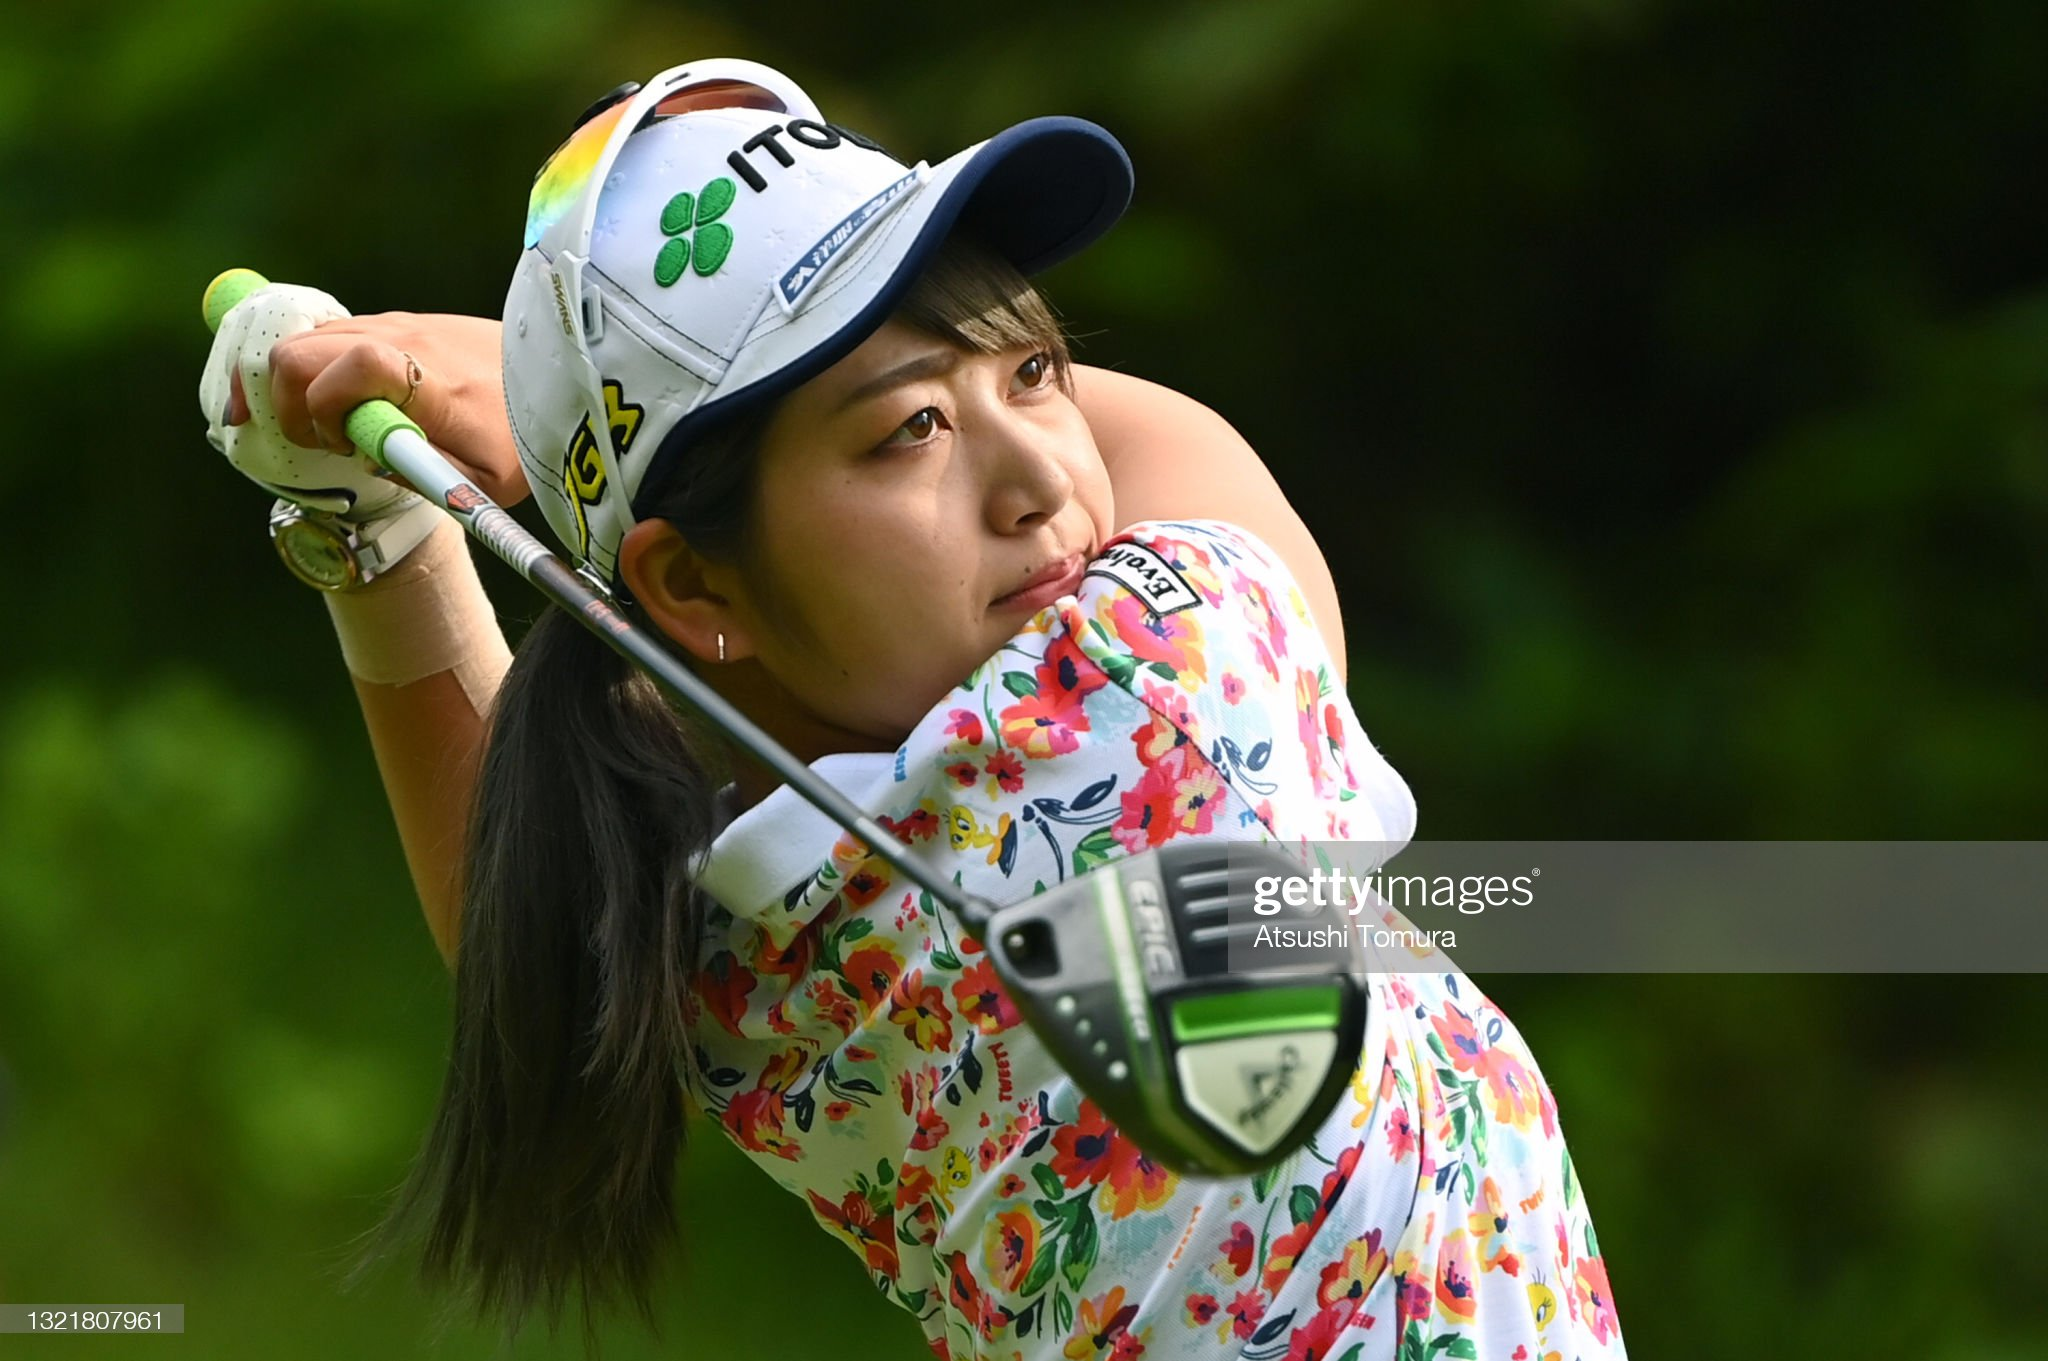 https://media.gettyimages.com/photos/hikari-tanabe-of-japan-hits-her-tee-shot-on-the-2nd-hole-during-the-picture-id1321807961?s=2048x2048